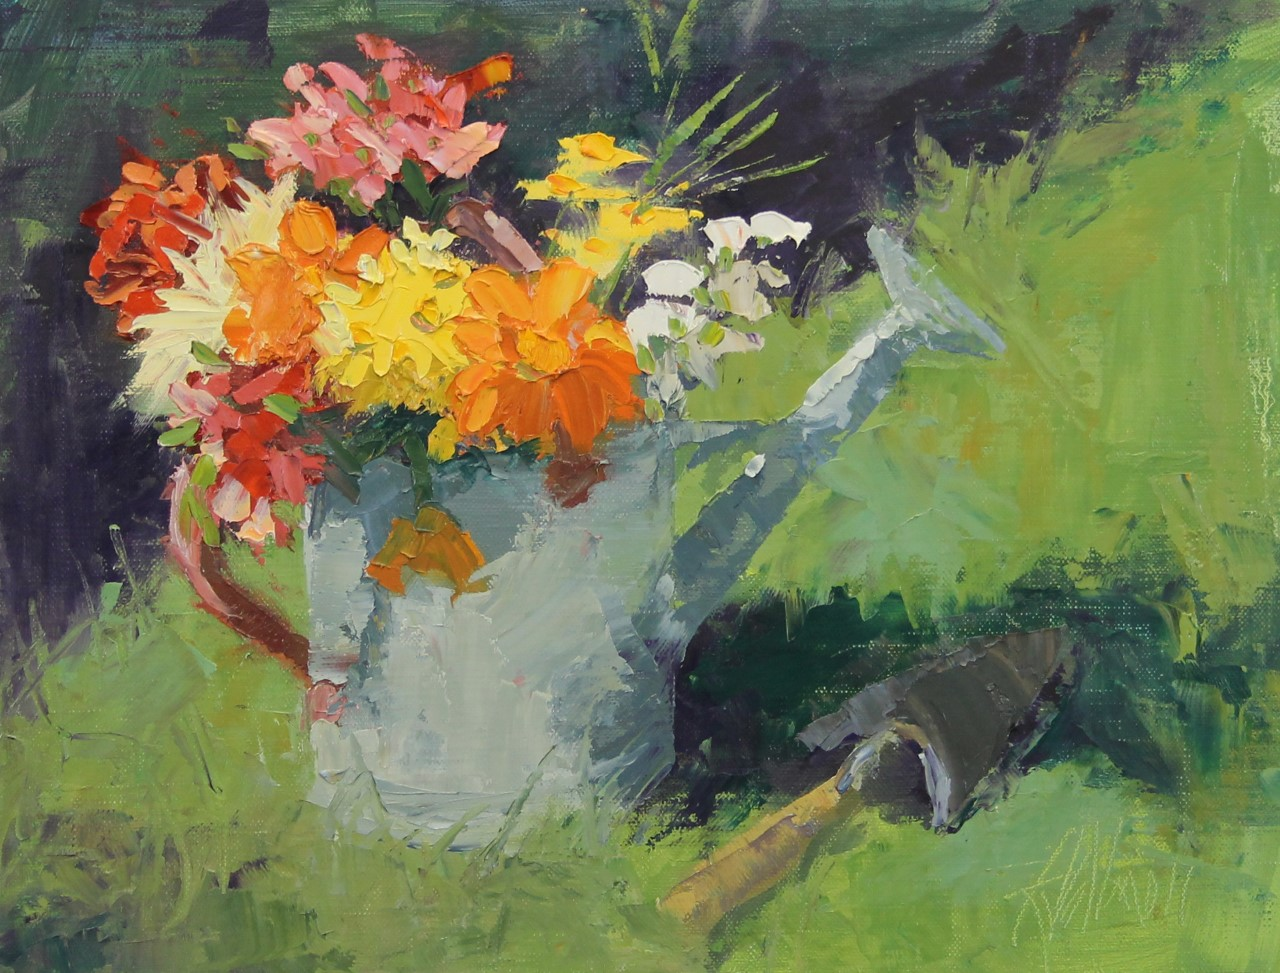 Robin Wellner - Watering Can